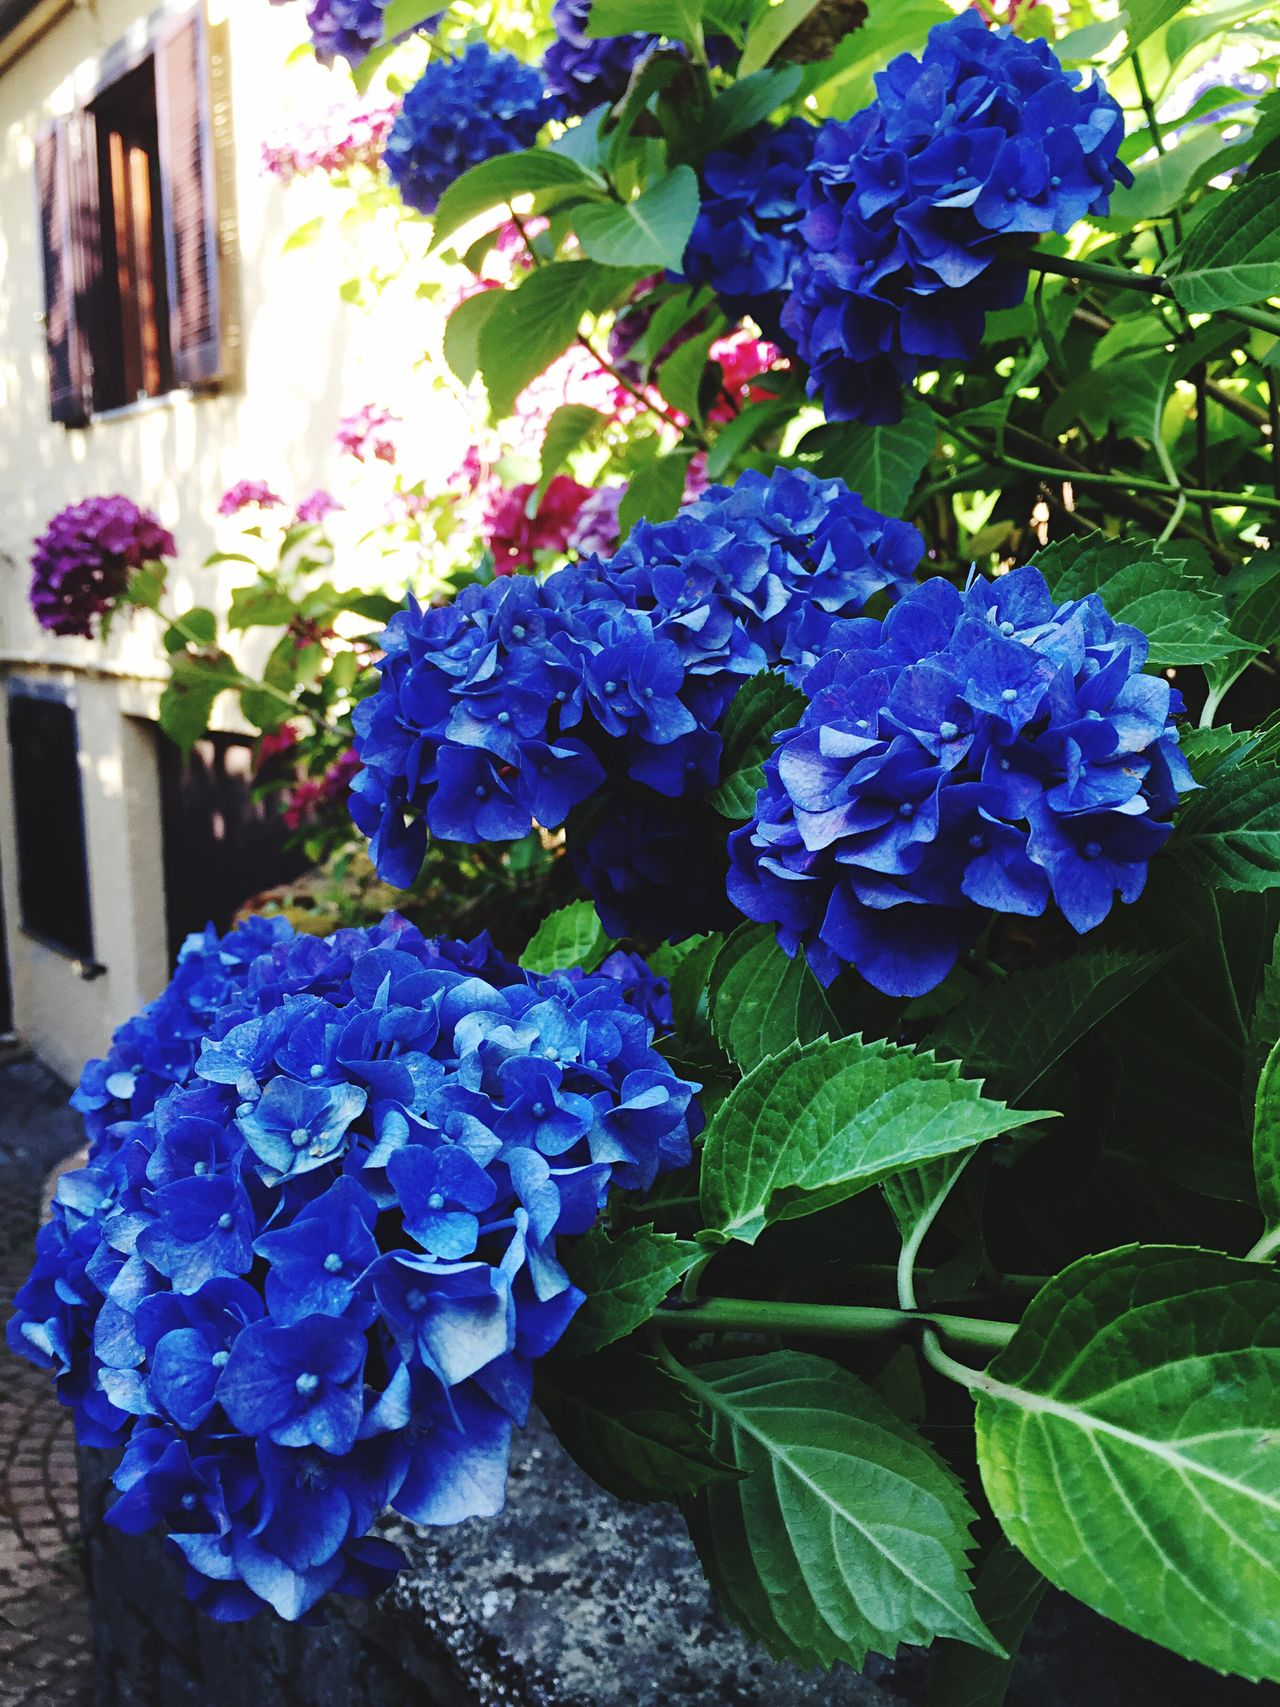 Ornate Nature Blue No People Day Flower Outdoors Beauty In Nature No People,